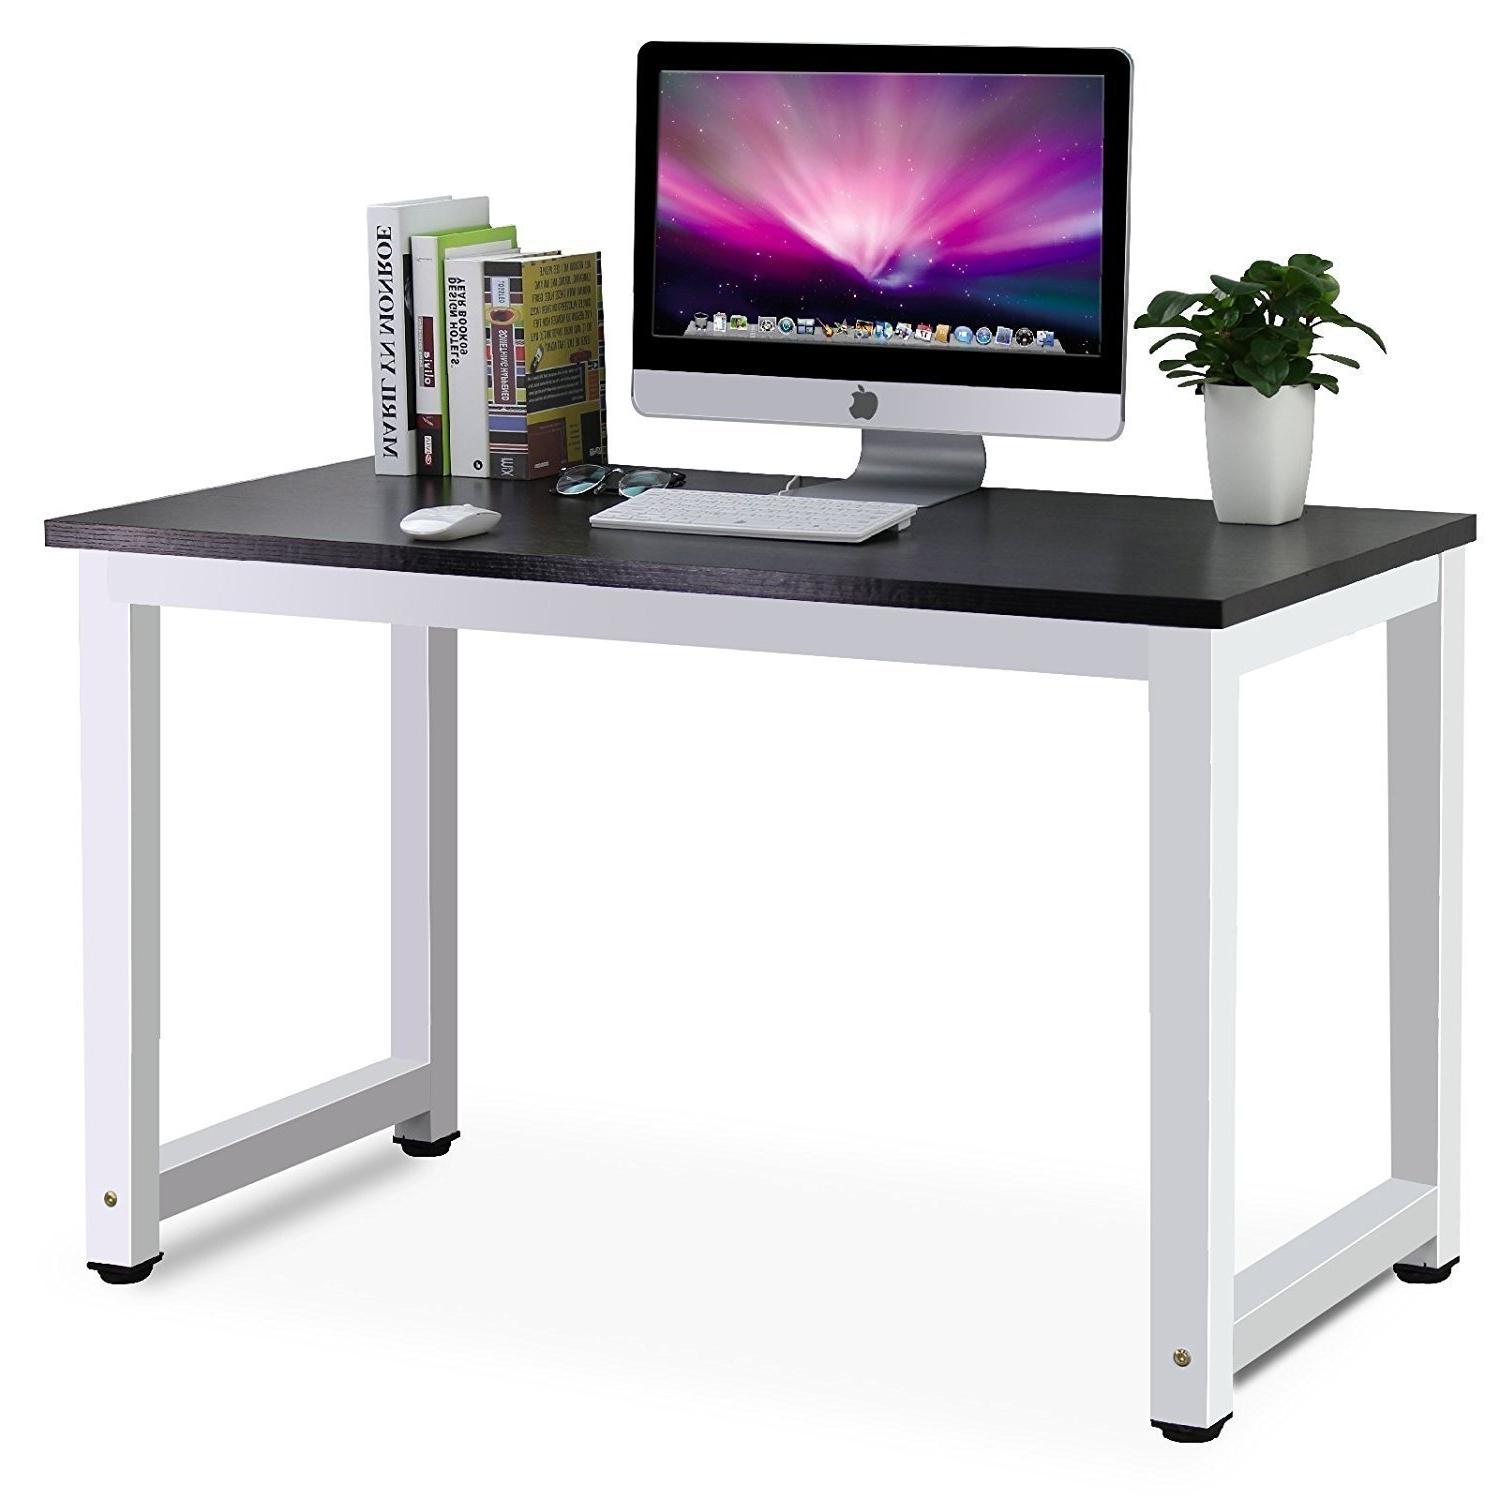 Tribesigns Modern Simple Style Computer Desk Pc Laptop Study Table Intended For Well Known Computer Desks (View 18 of 20)